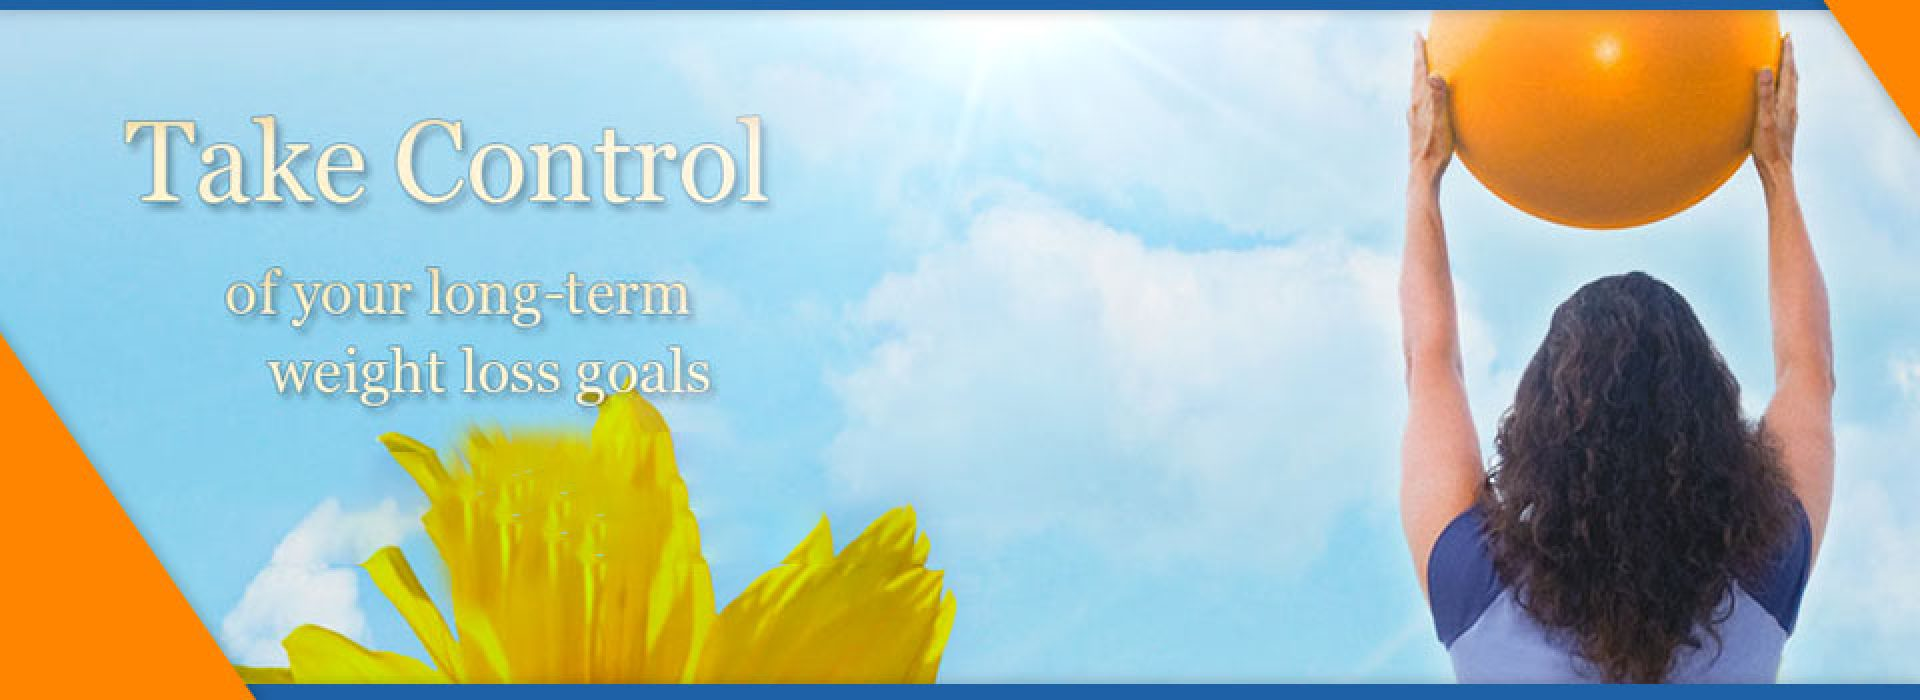 TakeControl-Slide_960x350